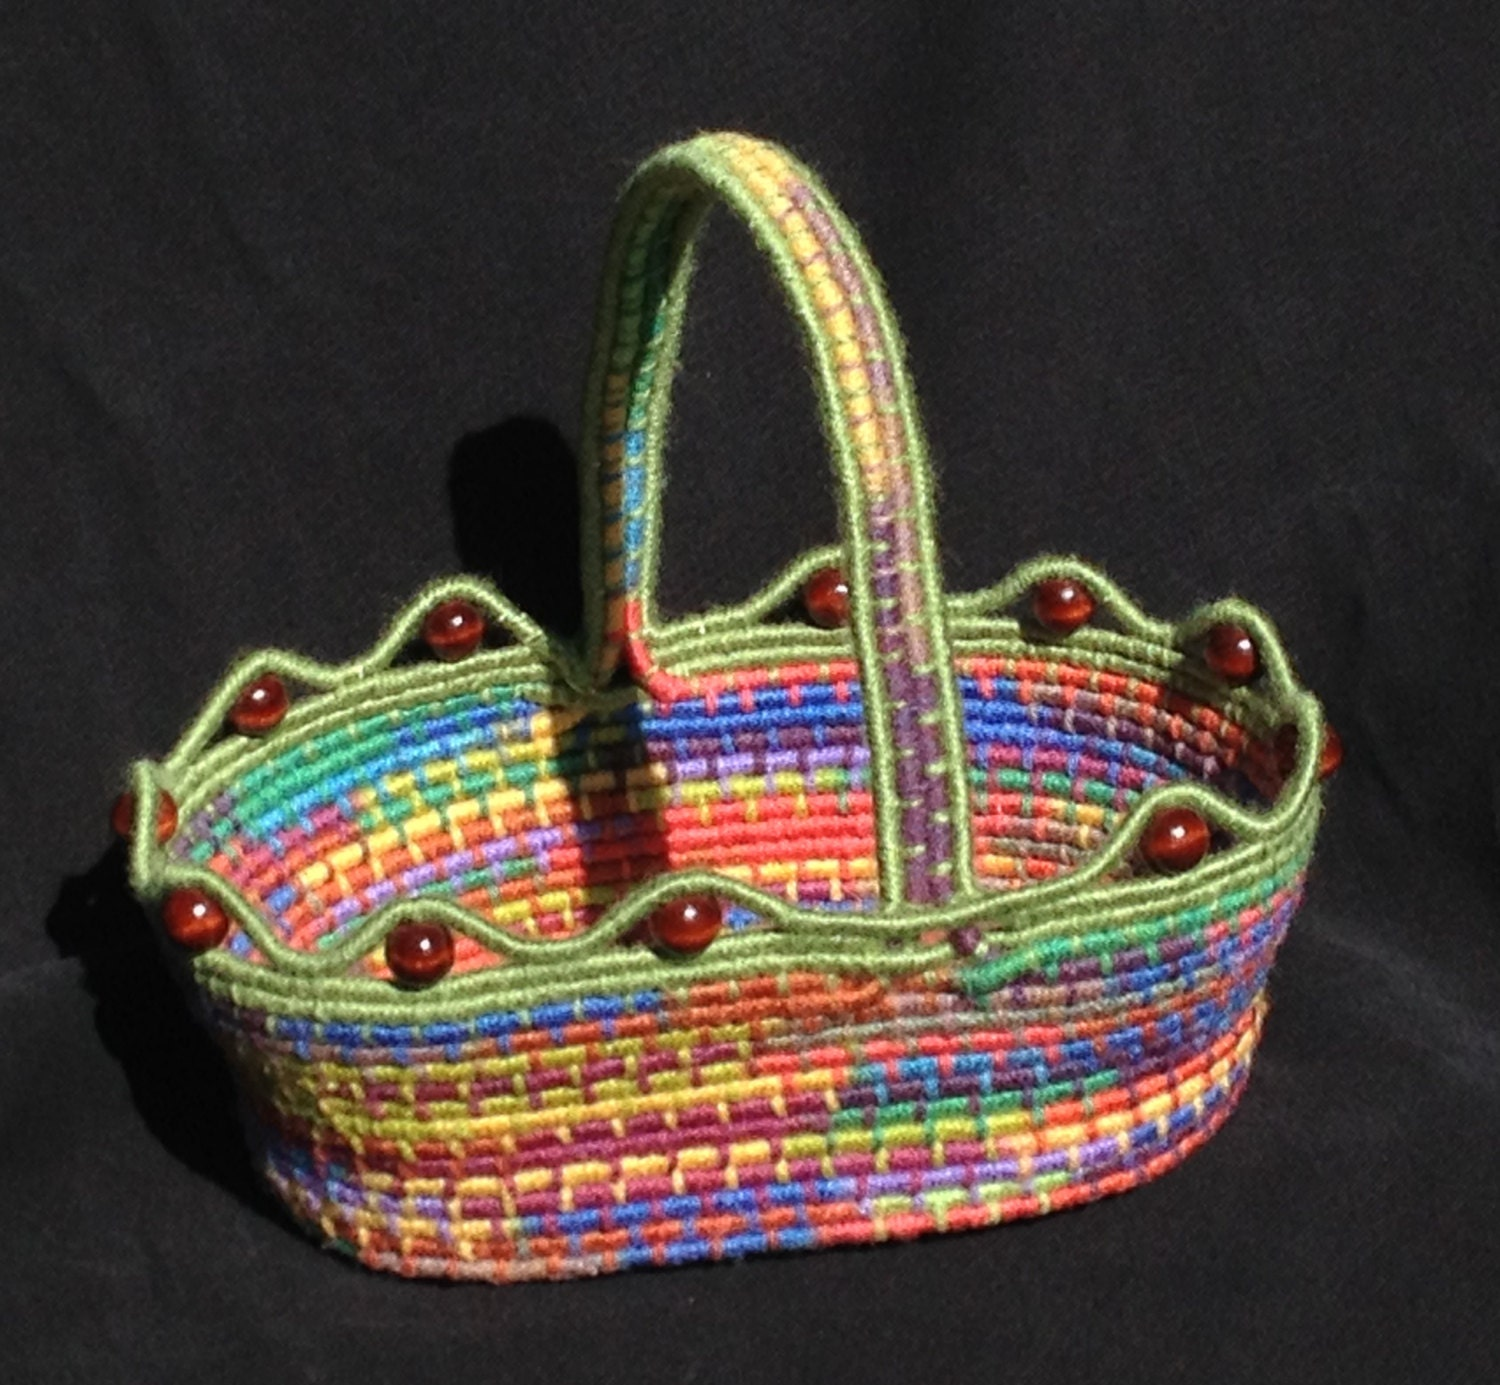 Handmade Rope Basket : Handmade coil basket multi color with handle